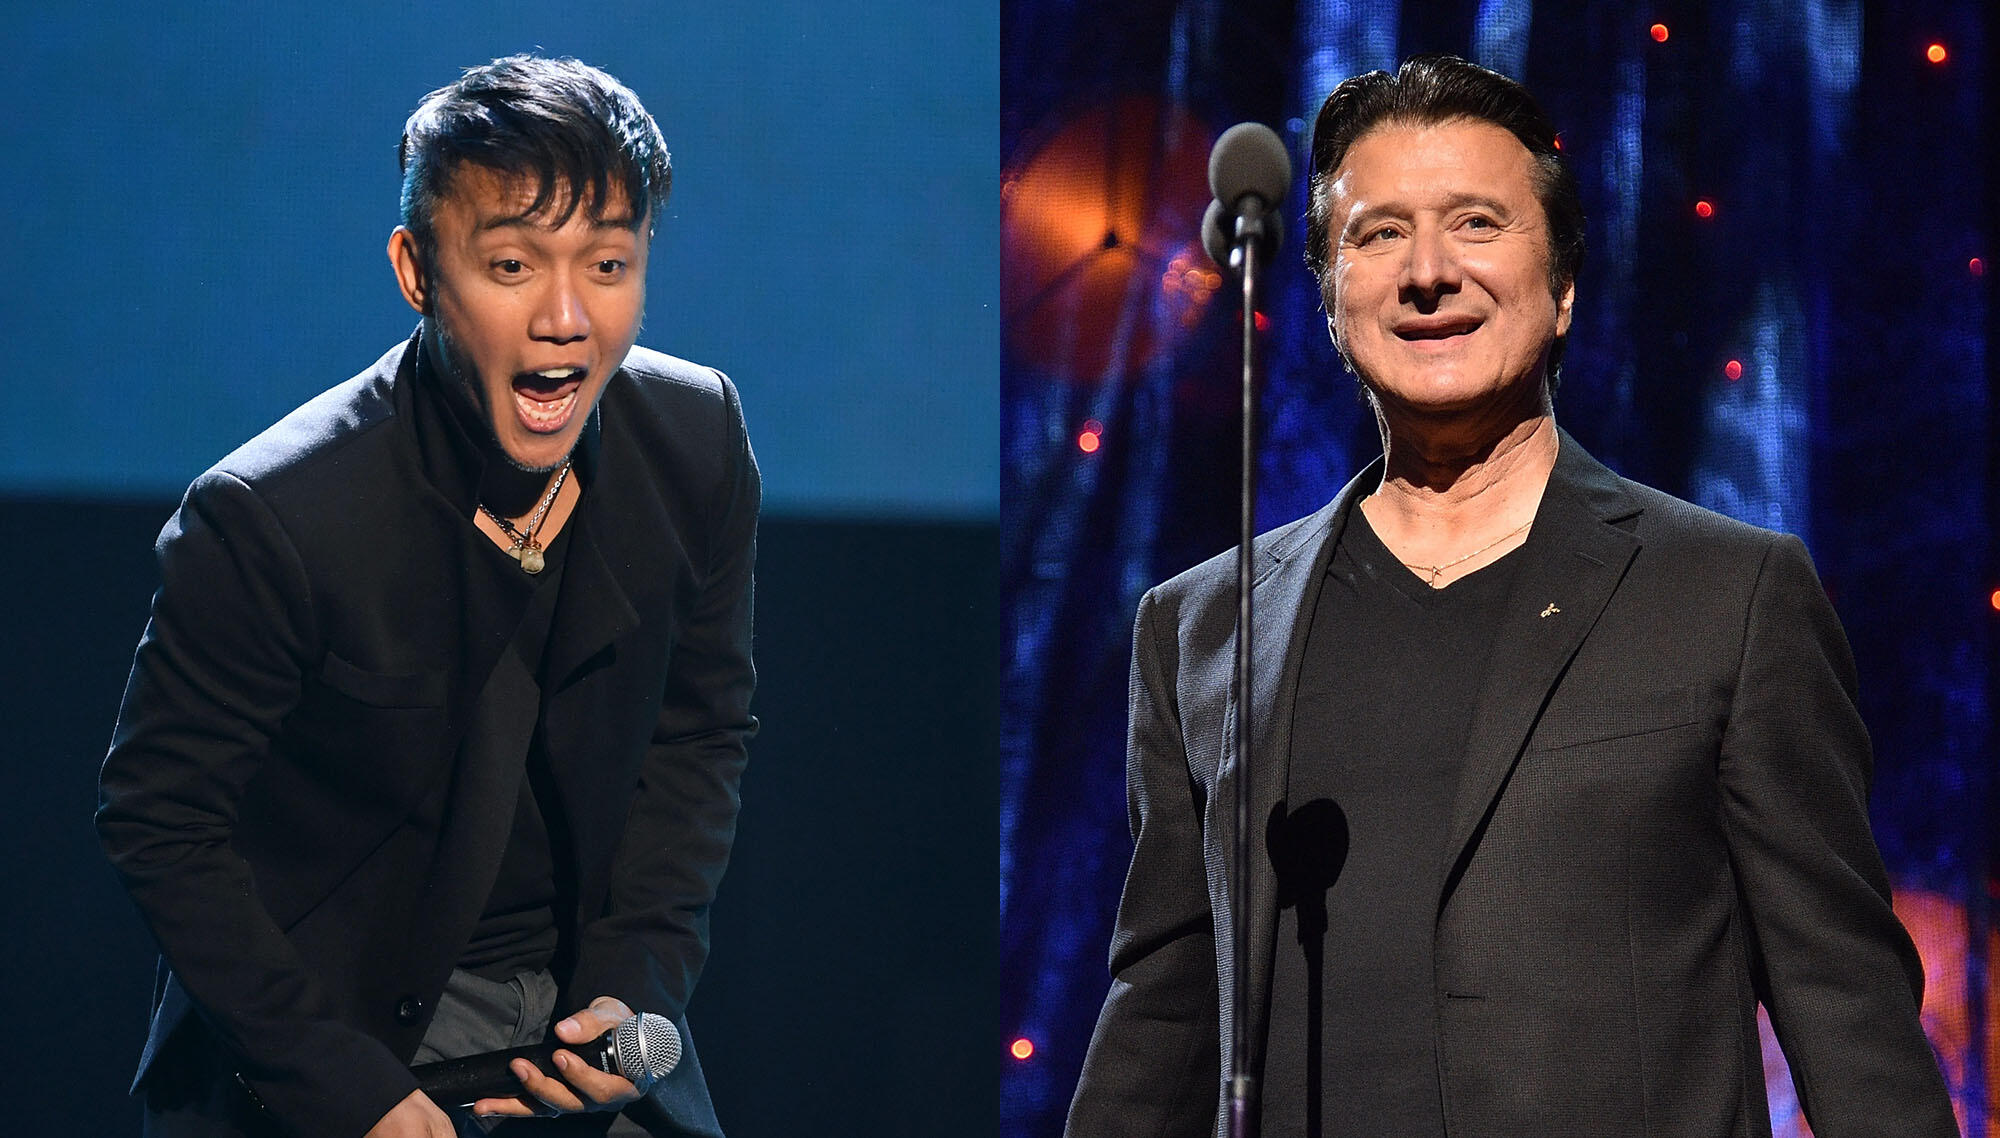 Arnel Pineda Dreams Of One Day Seeing Journey Reunite With Steve Perry